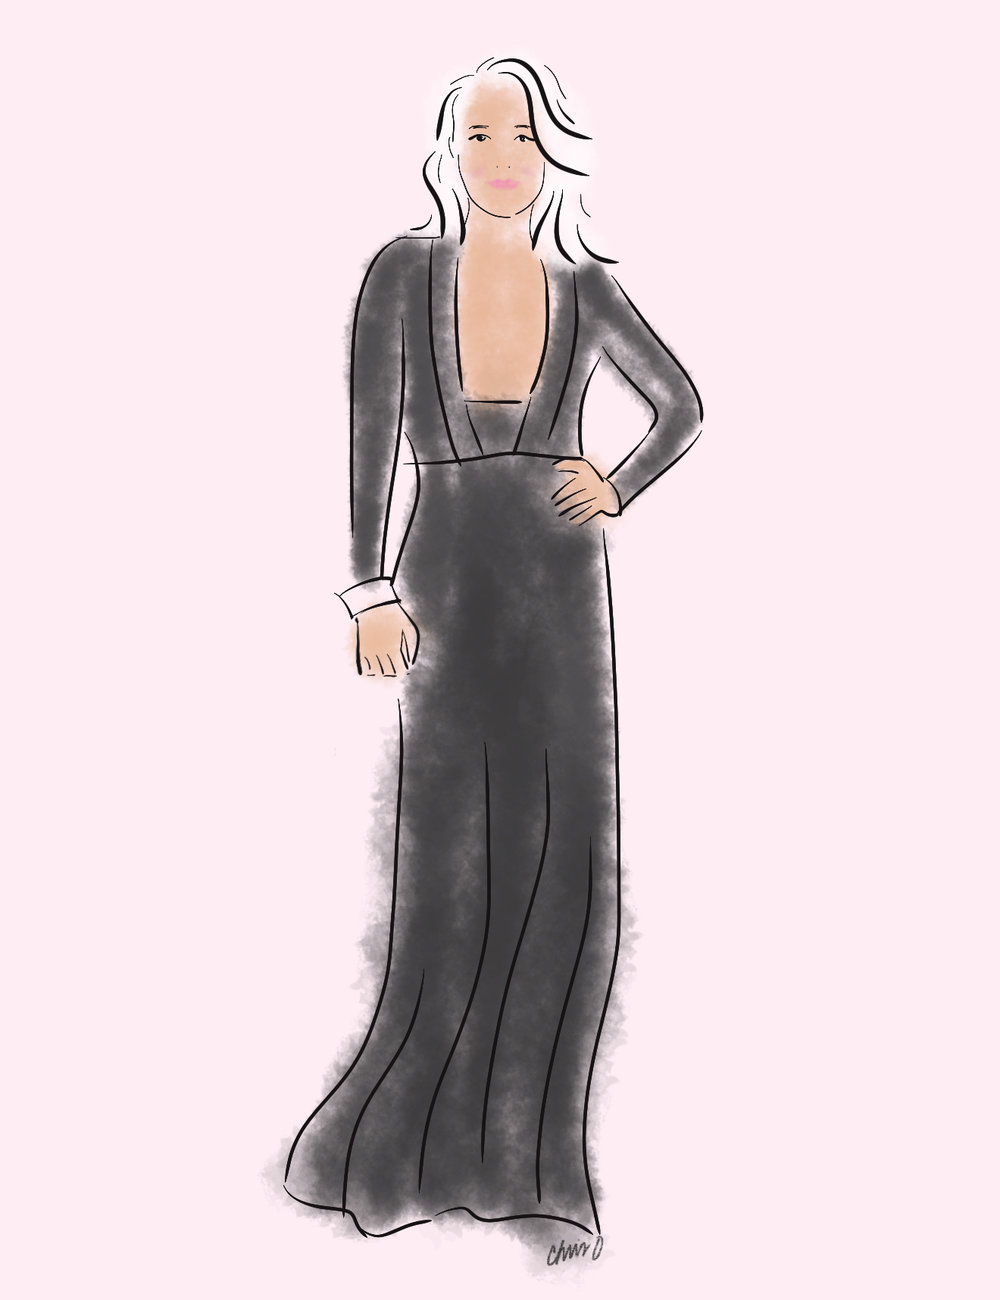 Kristen Bell fashion sketch at Golden Globes by Chris Olson.